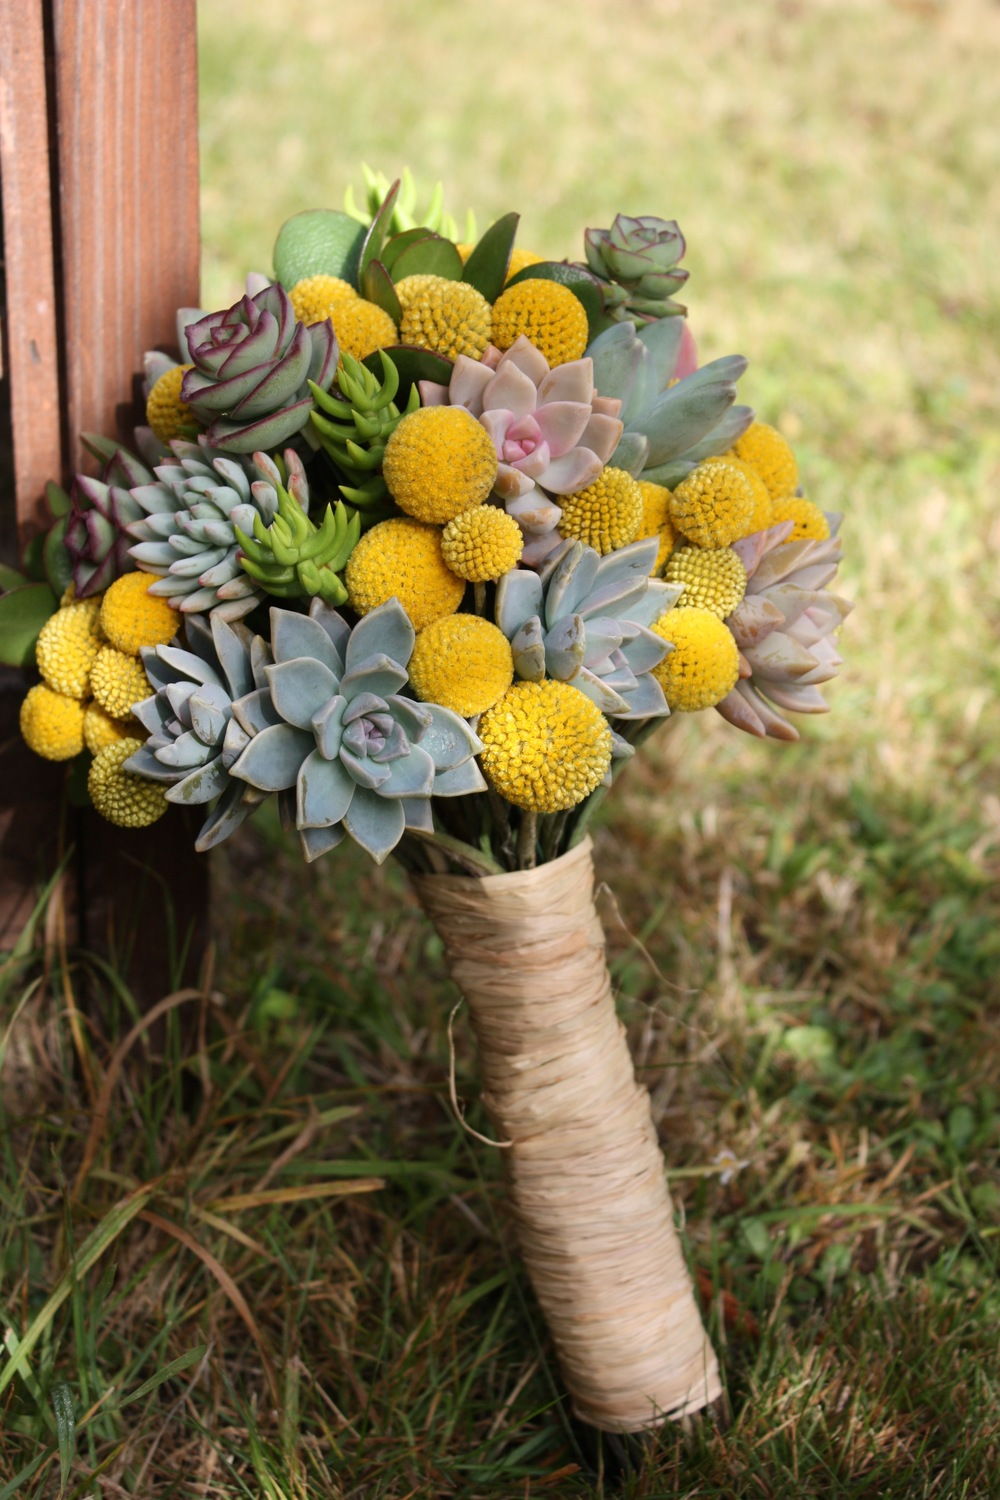 Jen's Bouquet was a eclectic mix of organic succulents and organic craspedia, and finished with raffia. This bouquet may have been the heaviest bouquet I have ever made! All the succulents ad a lot of weight. After the wedding Jen was able to root and plant her succulents to keep a part her bridal bouquet!